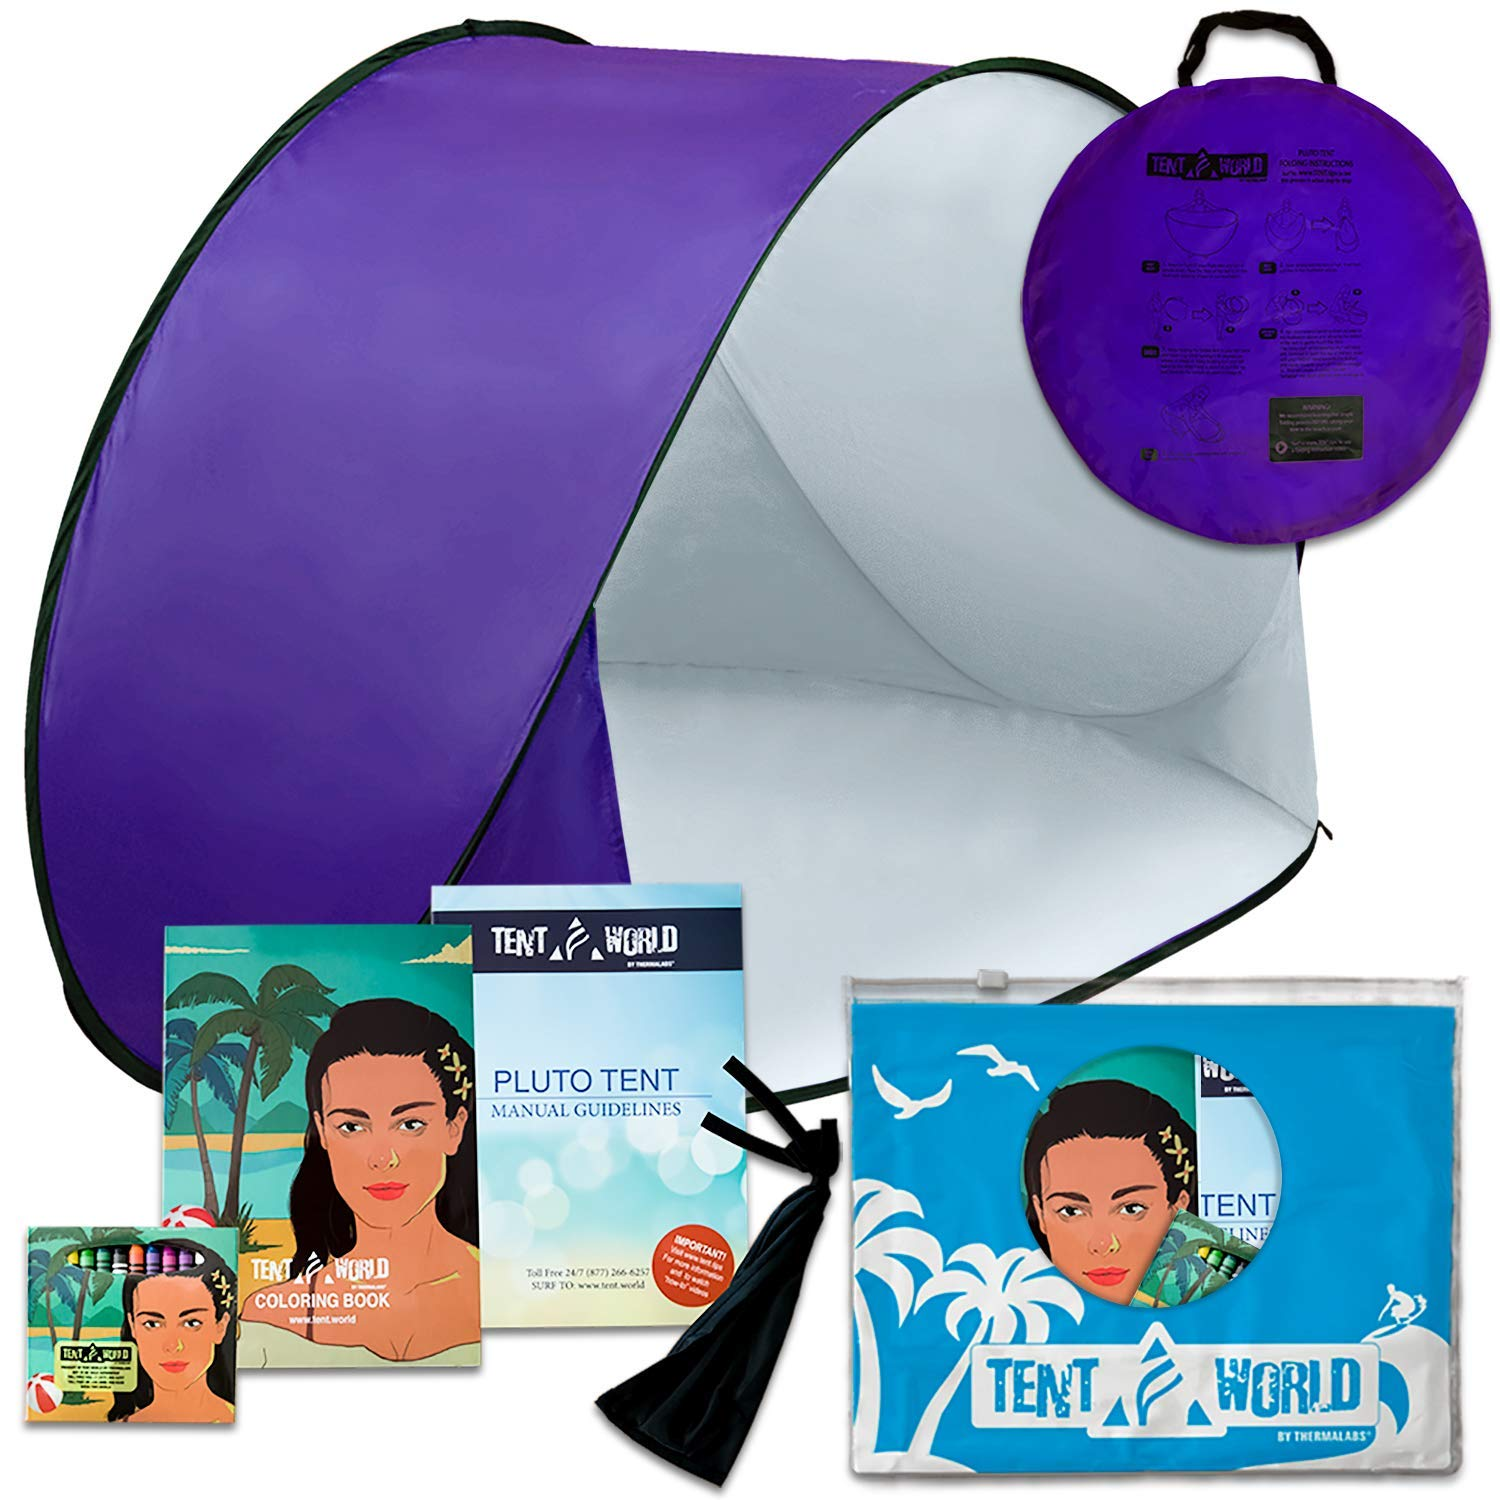 Pluto Purple Haze Tent: or Keep Your Wind Toddlers Sheltered from Toddlers The Sun, Wind & Rain. Portable Easy-up Children Windproof Cabana for The Beach, Park, Garden or Anywhere Outdoors. Comes with Bonuses [並行輸入品] B07R4T47GG, ノセチョウ:81a48687 --- number-directory.top